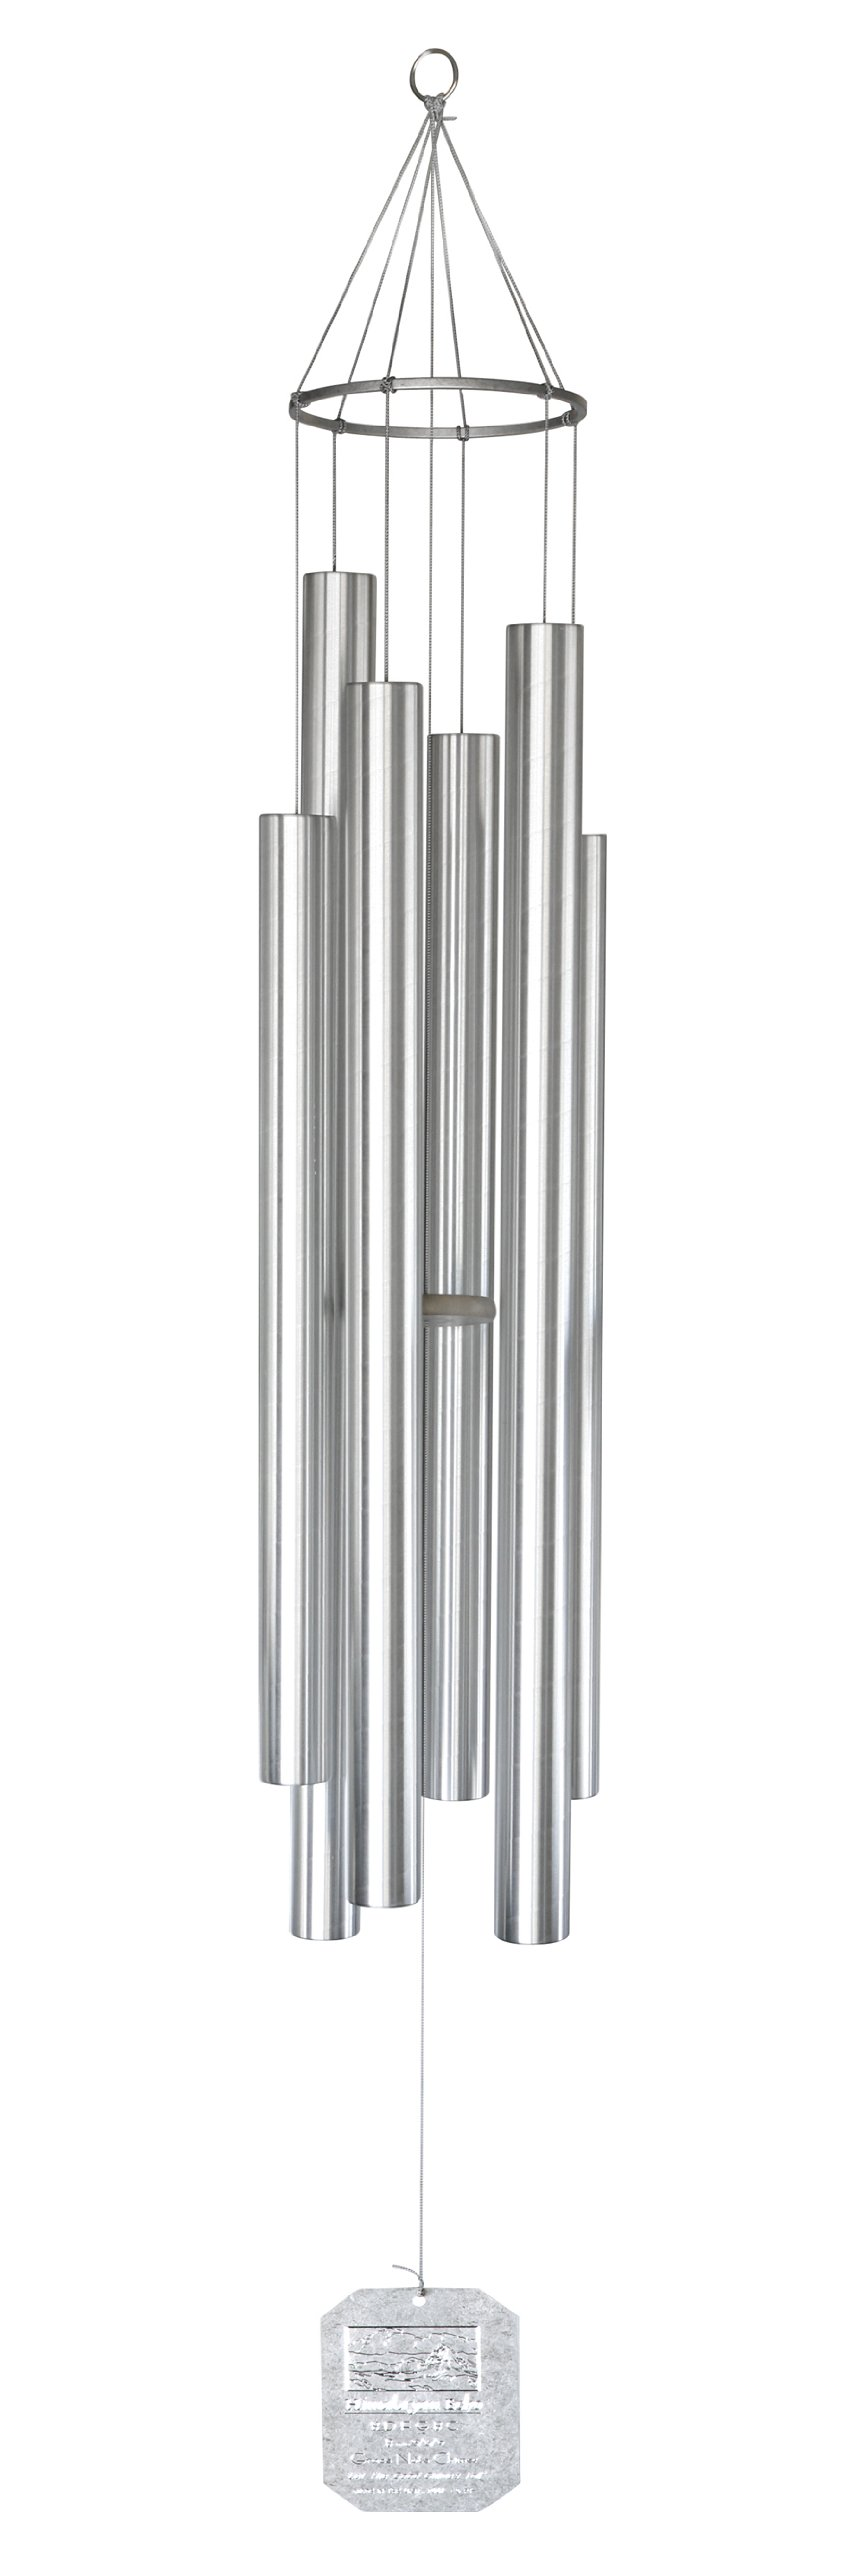 Grace Note Chimes 3XXX Deluxe Himalayan Echo Wind Chimes, 84-Inch, Silver